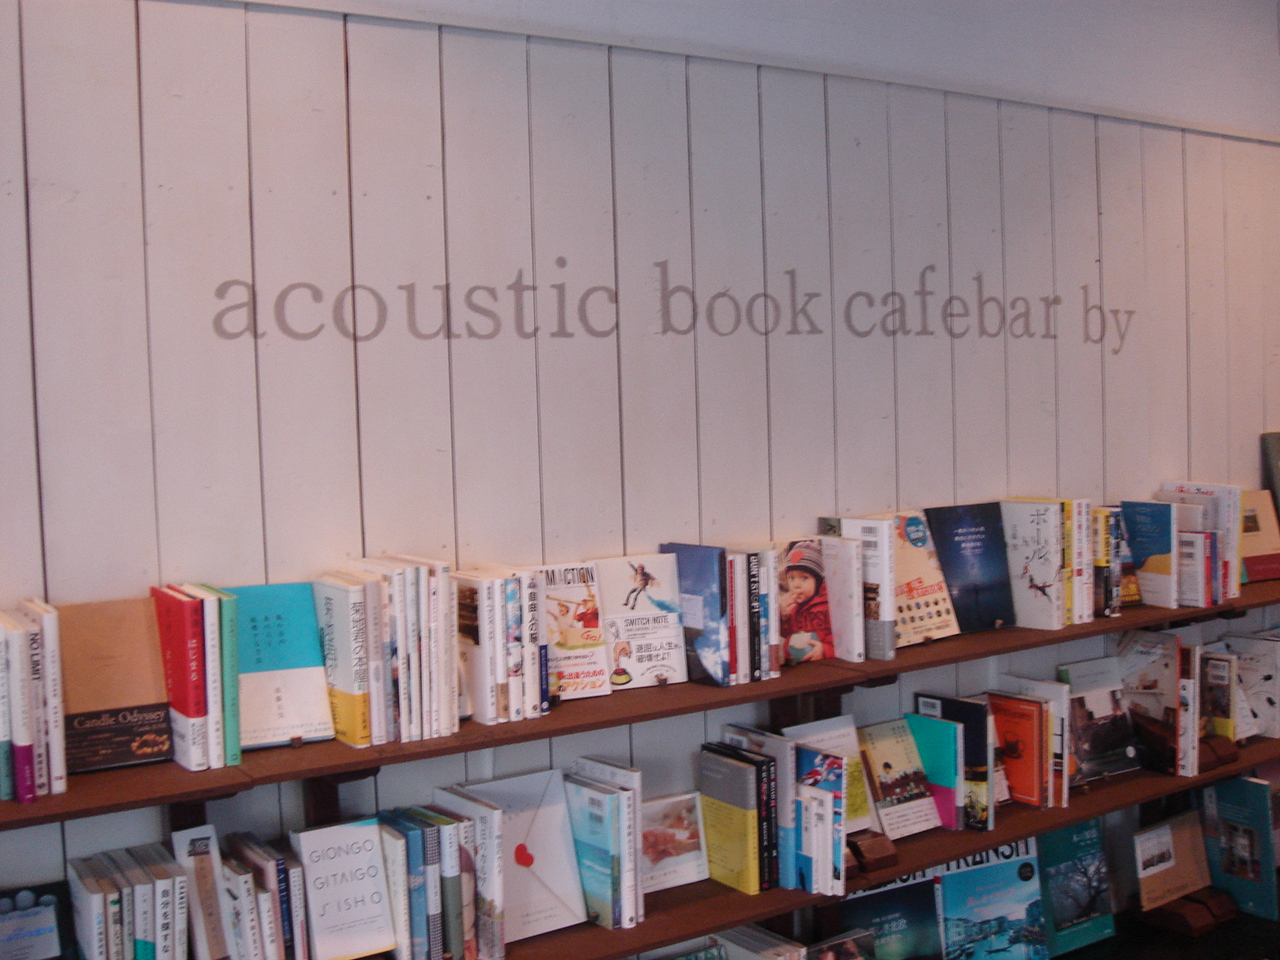 acoustic book cafebar by